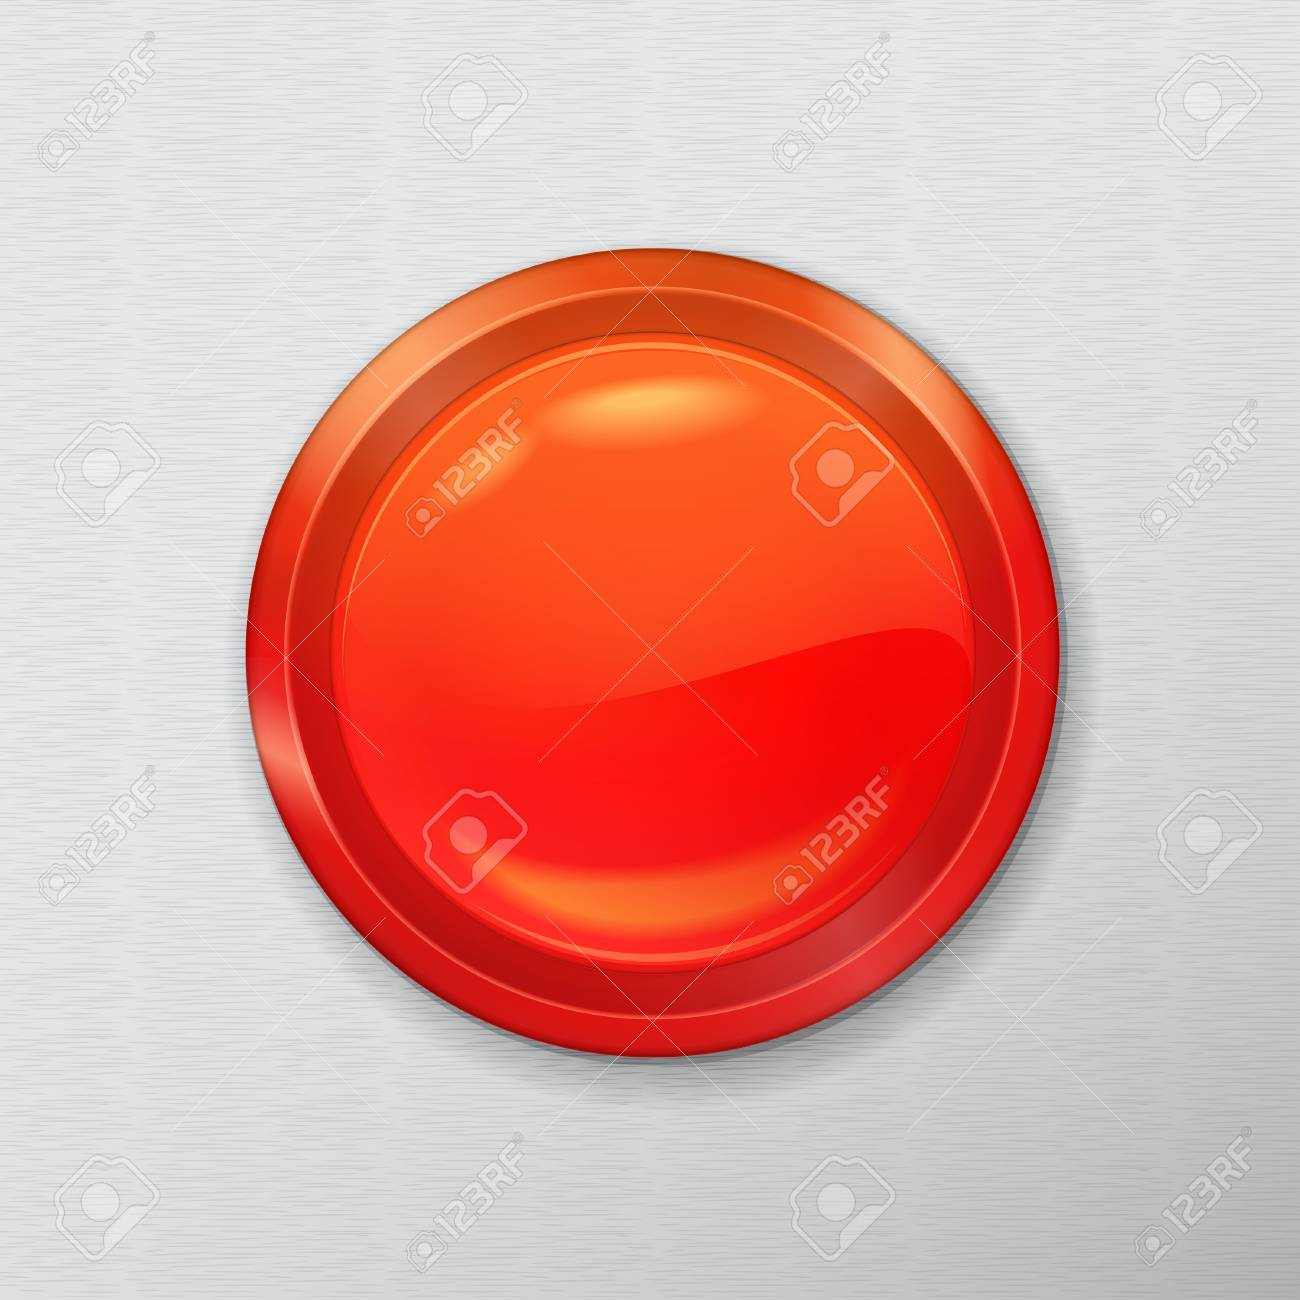 bright chrome realistic red button interface on a metal background Stock Vector - 21423820